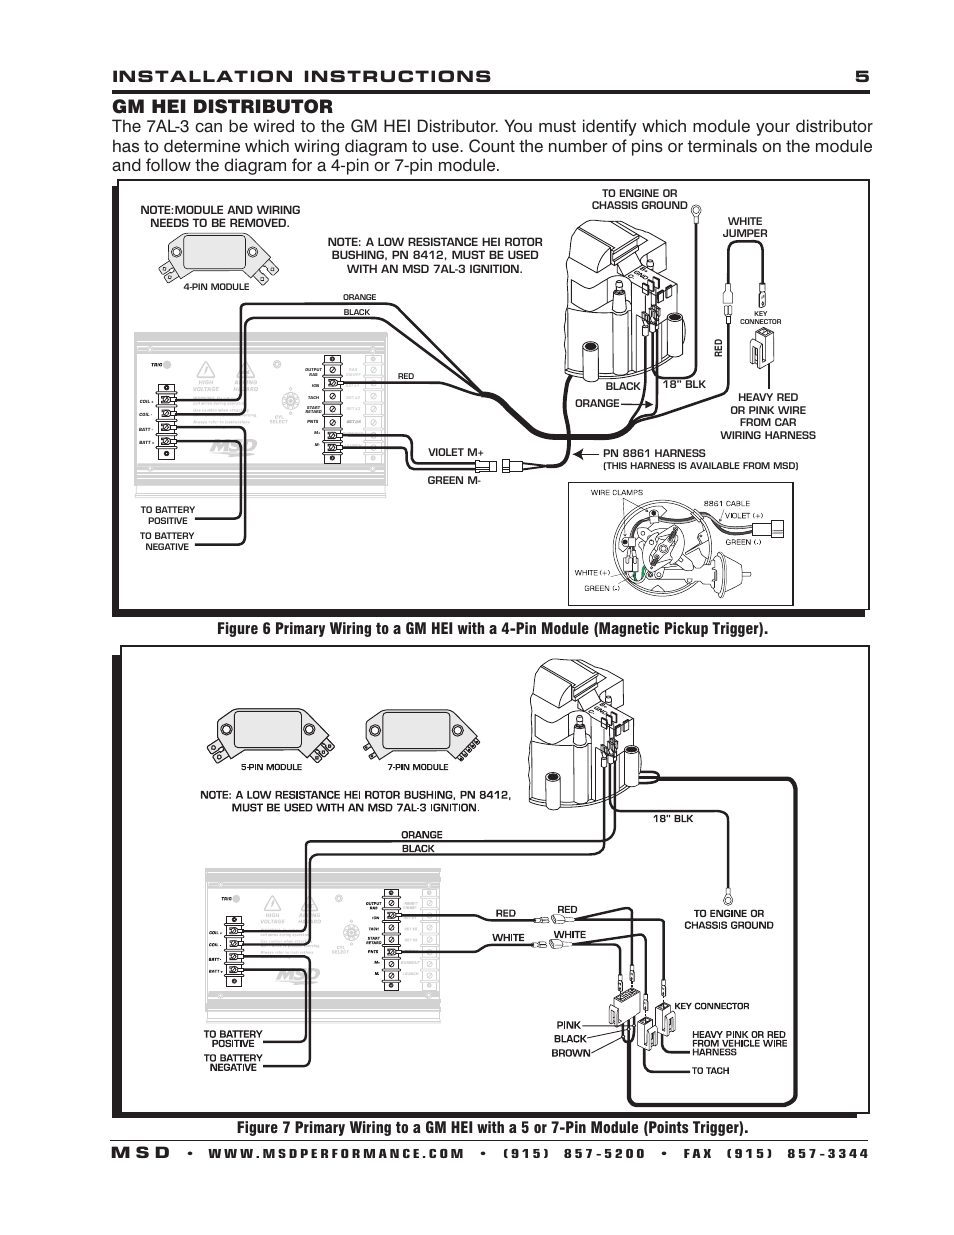 msd 6201 ignition wiring diagram gm hei distributor installation instructions 5 m s d #6